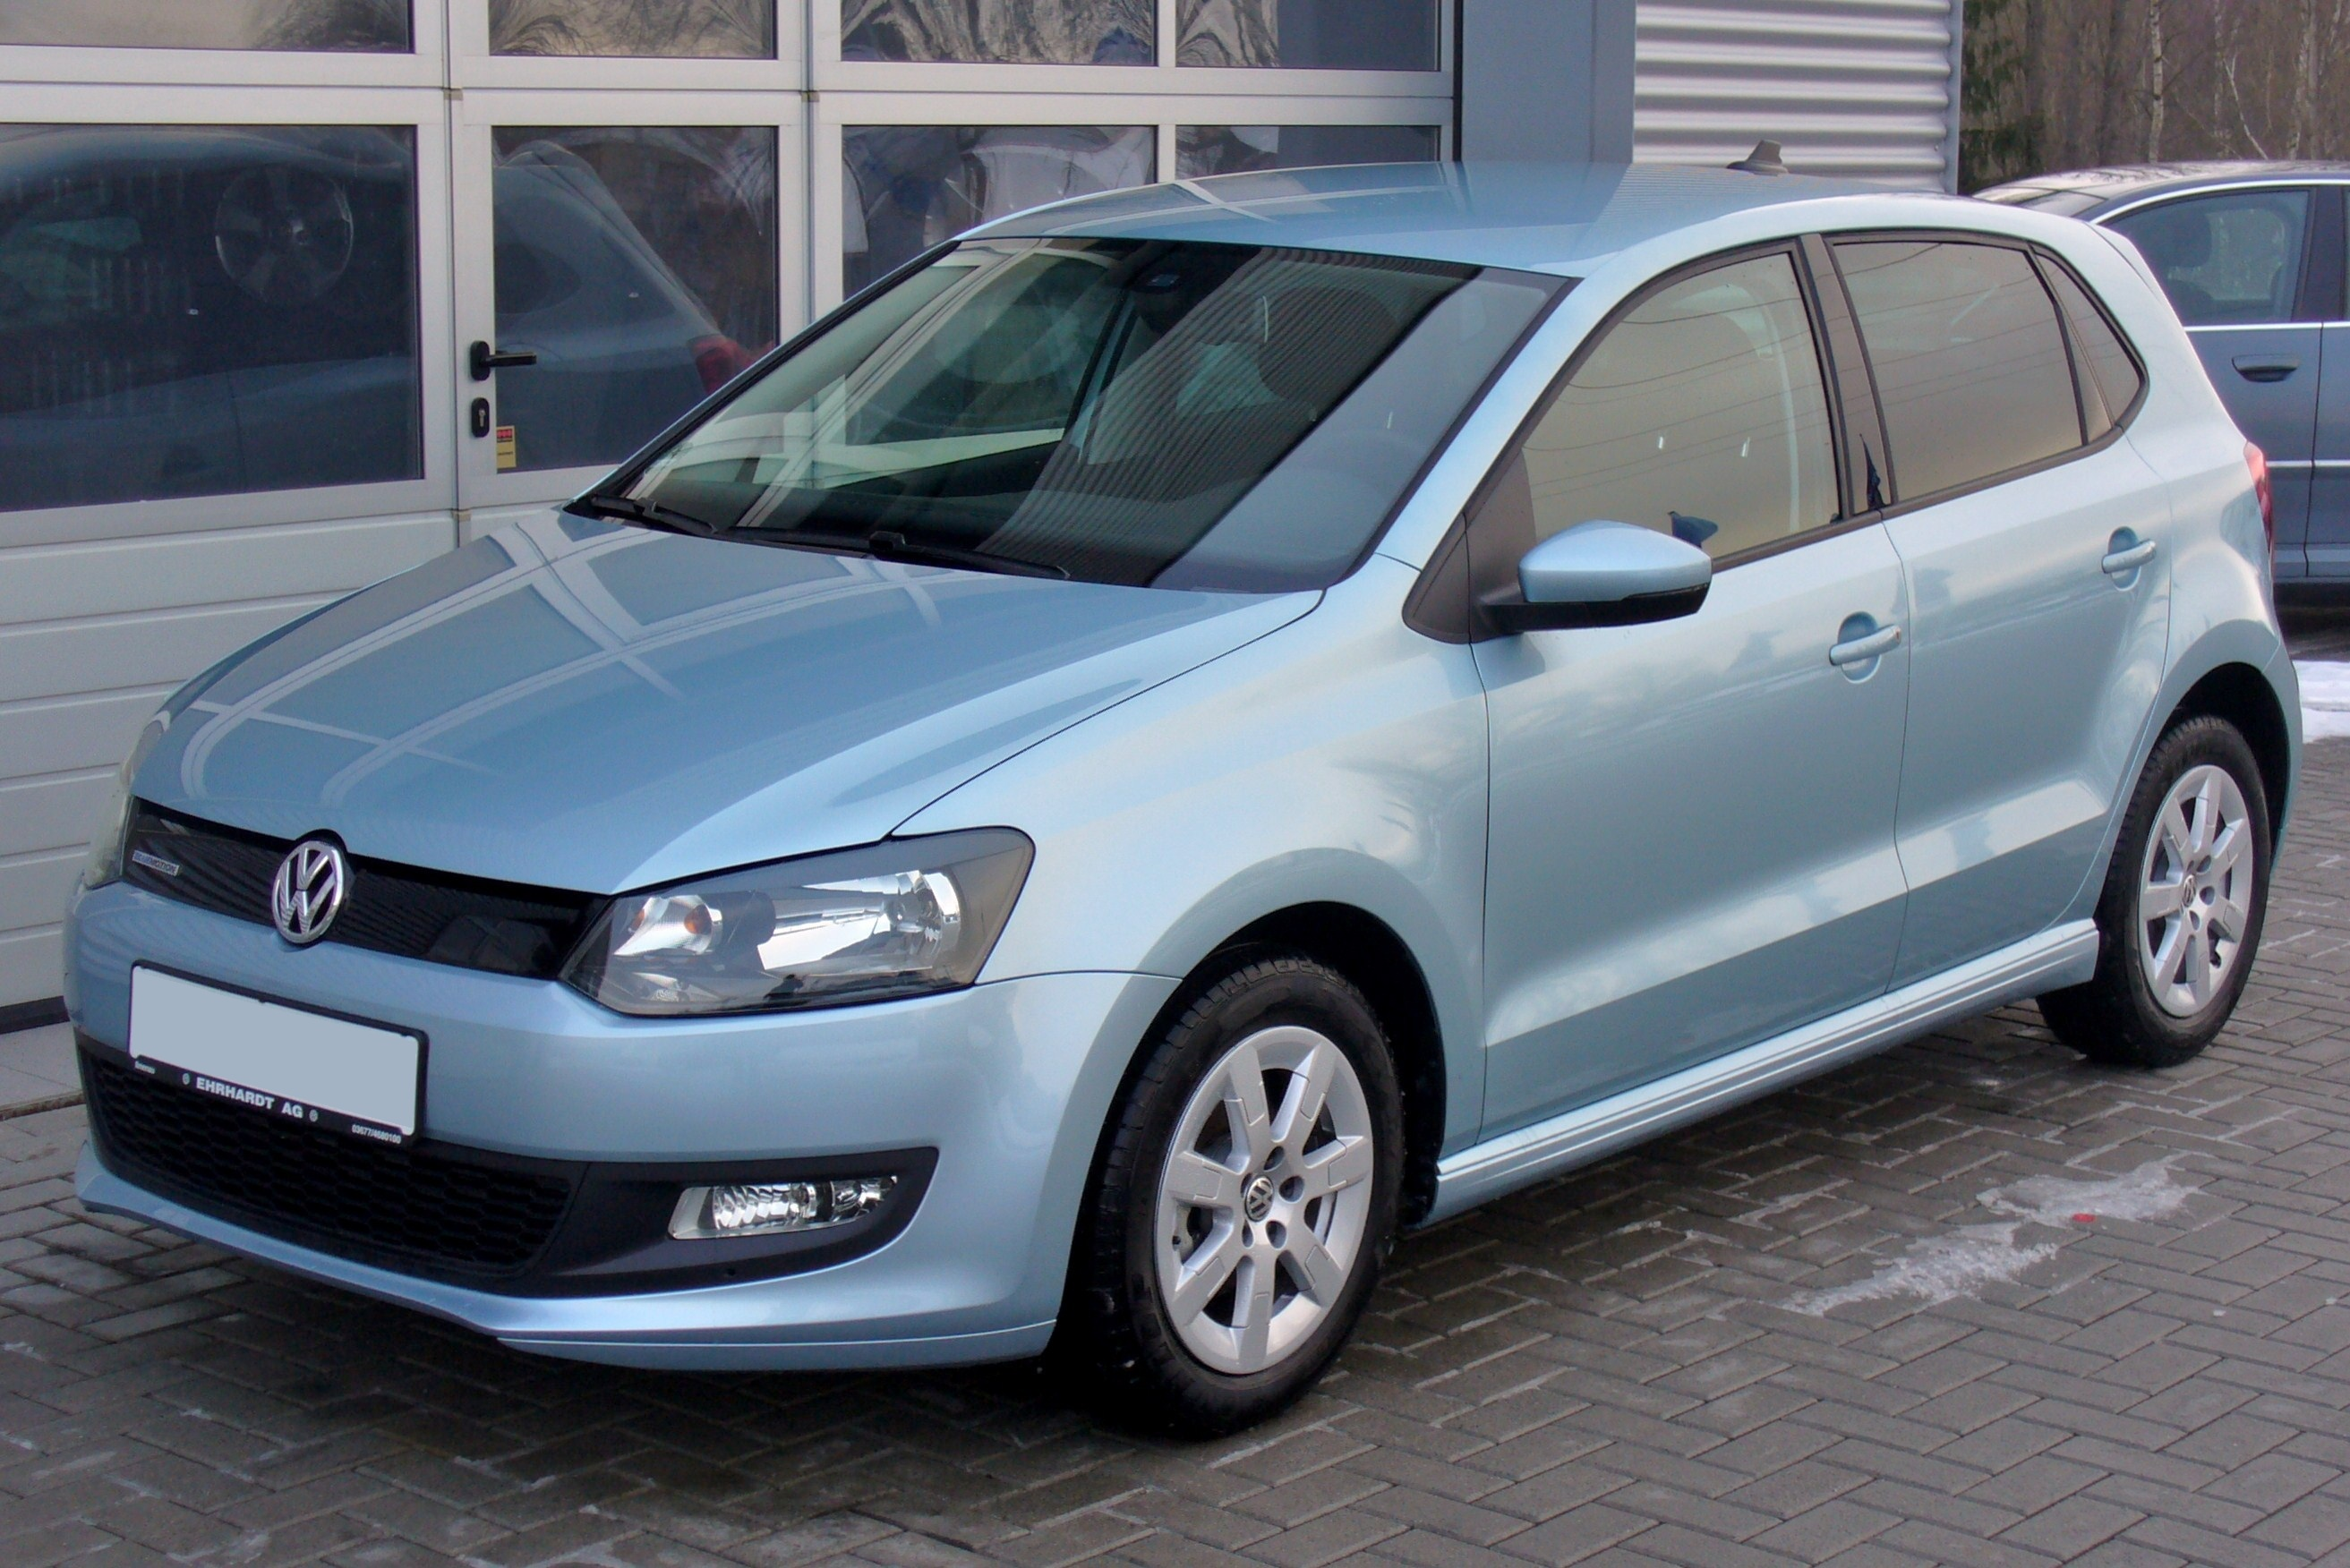 file vw polo v 1 2 tdi bluemotion glacierblau jpg wikimedia commons. Black Bedroom Furniture Sets. Home Design Ideas